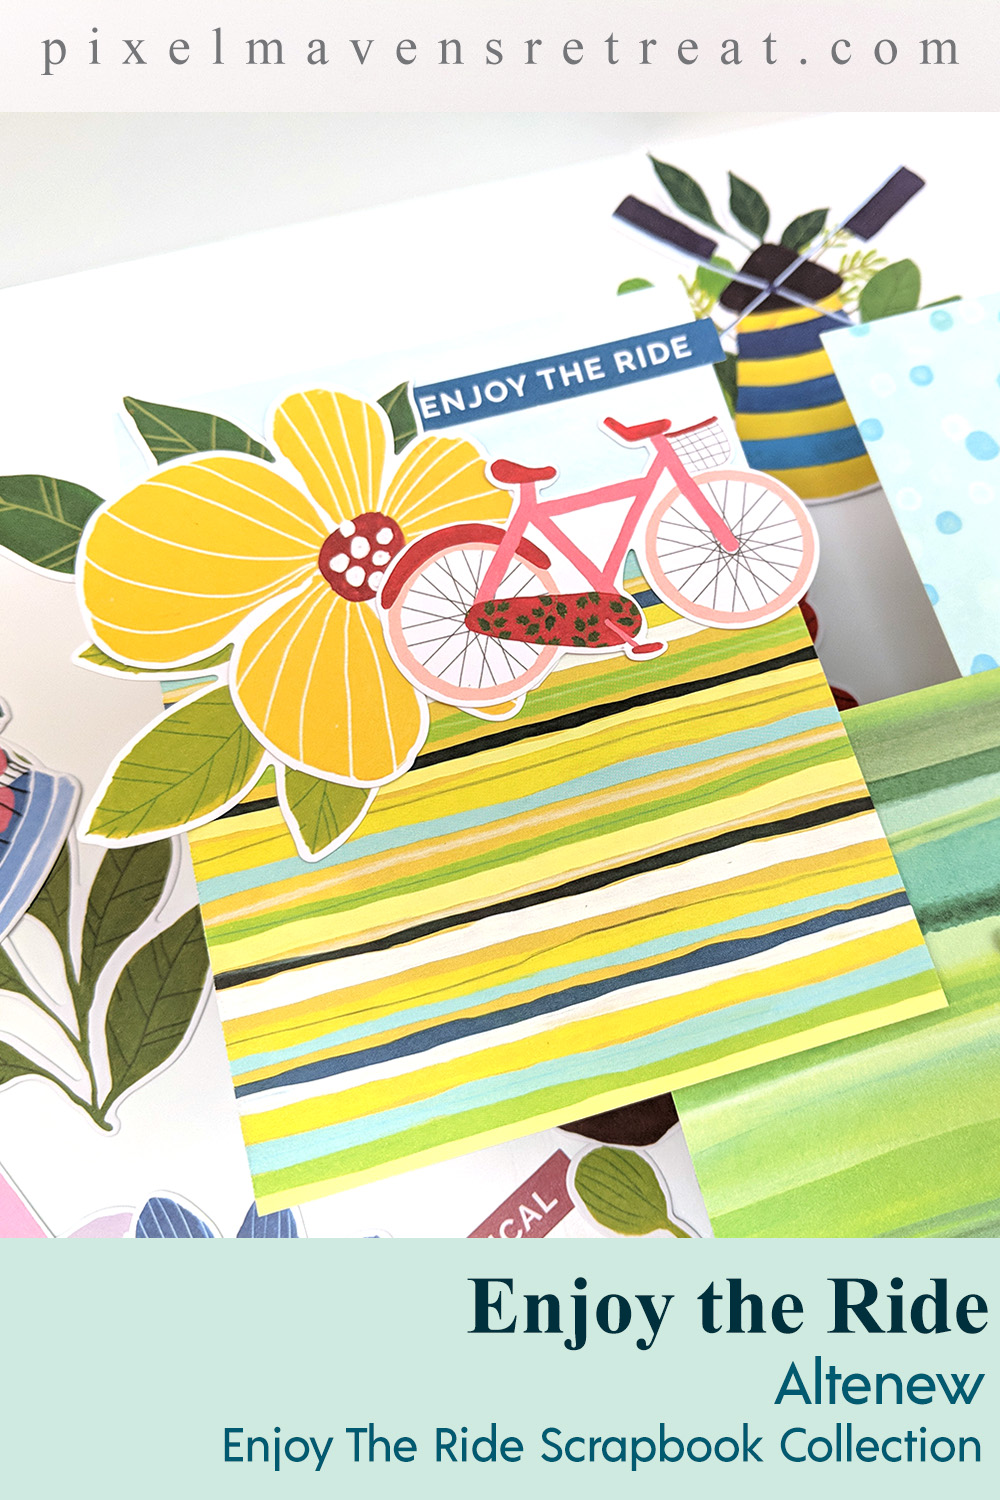 Altenew Enjoy the Ride Scrapbook Collection Release Blog Hop + Giveaway